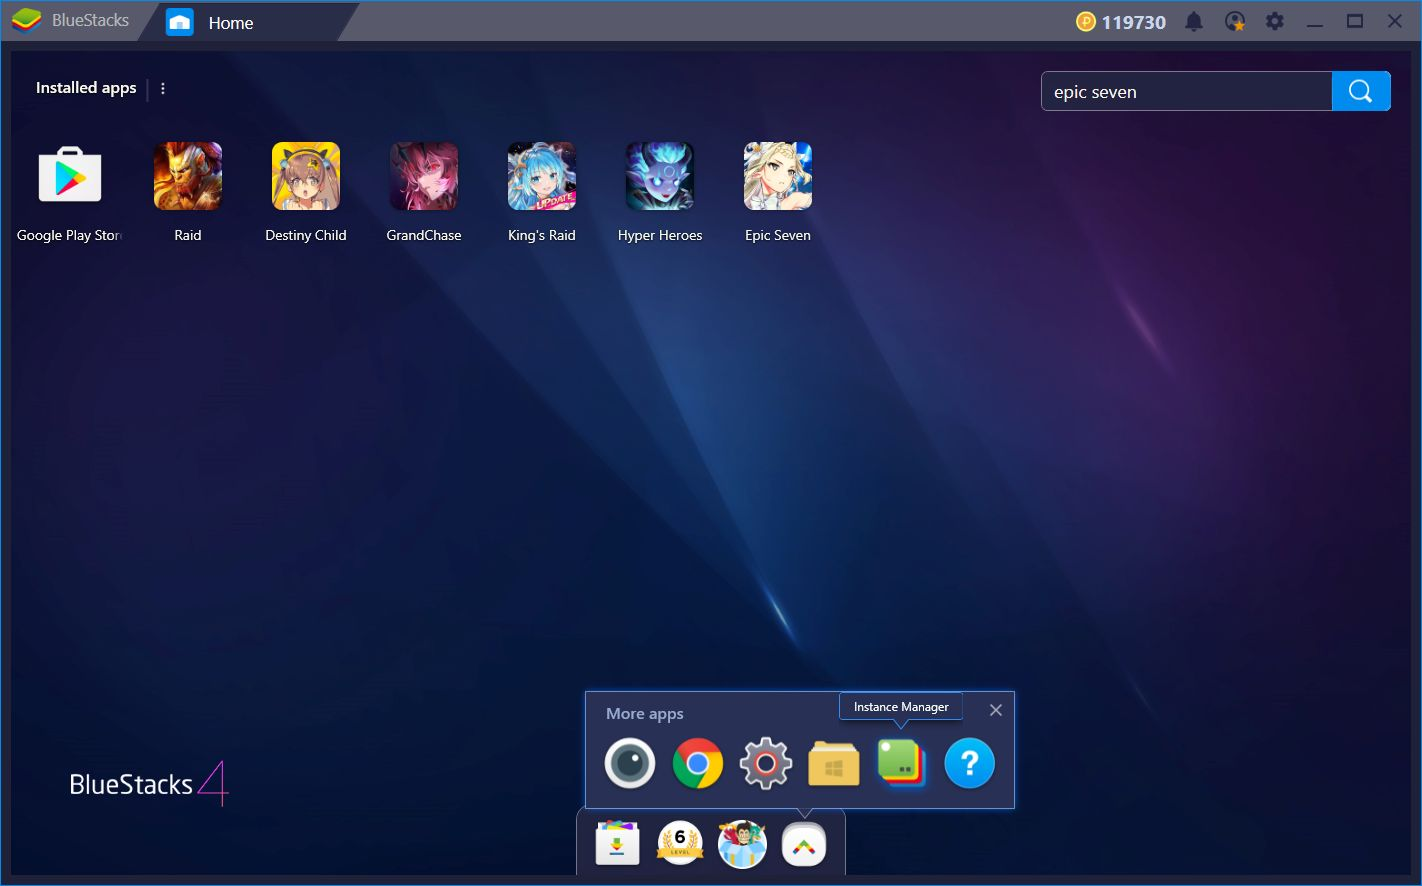 Rerolling with BlueStacks—How to Unlock Awesome Characters Early On